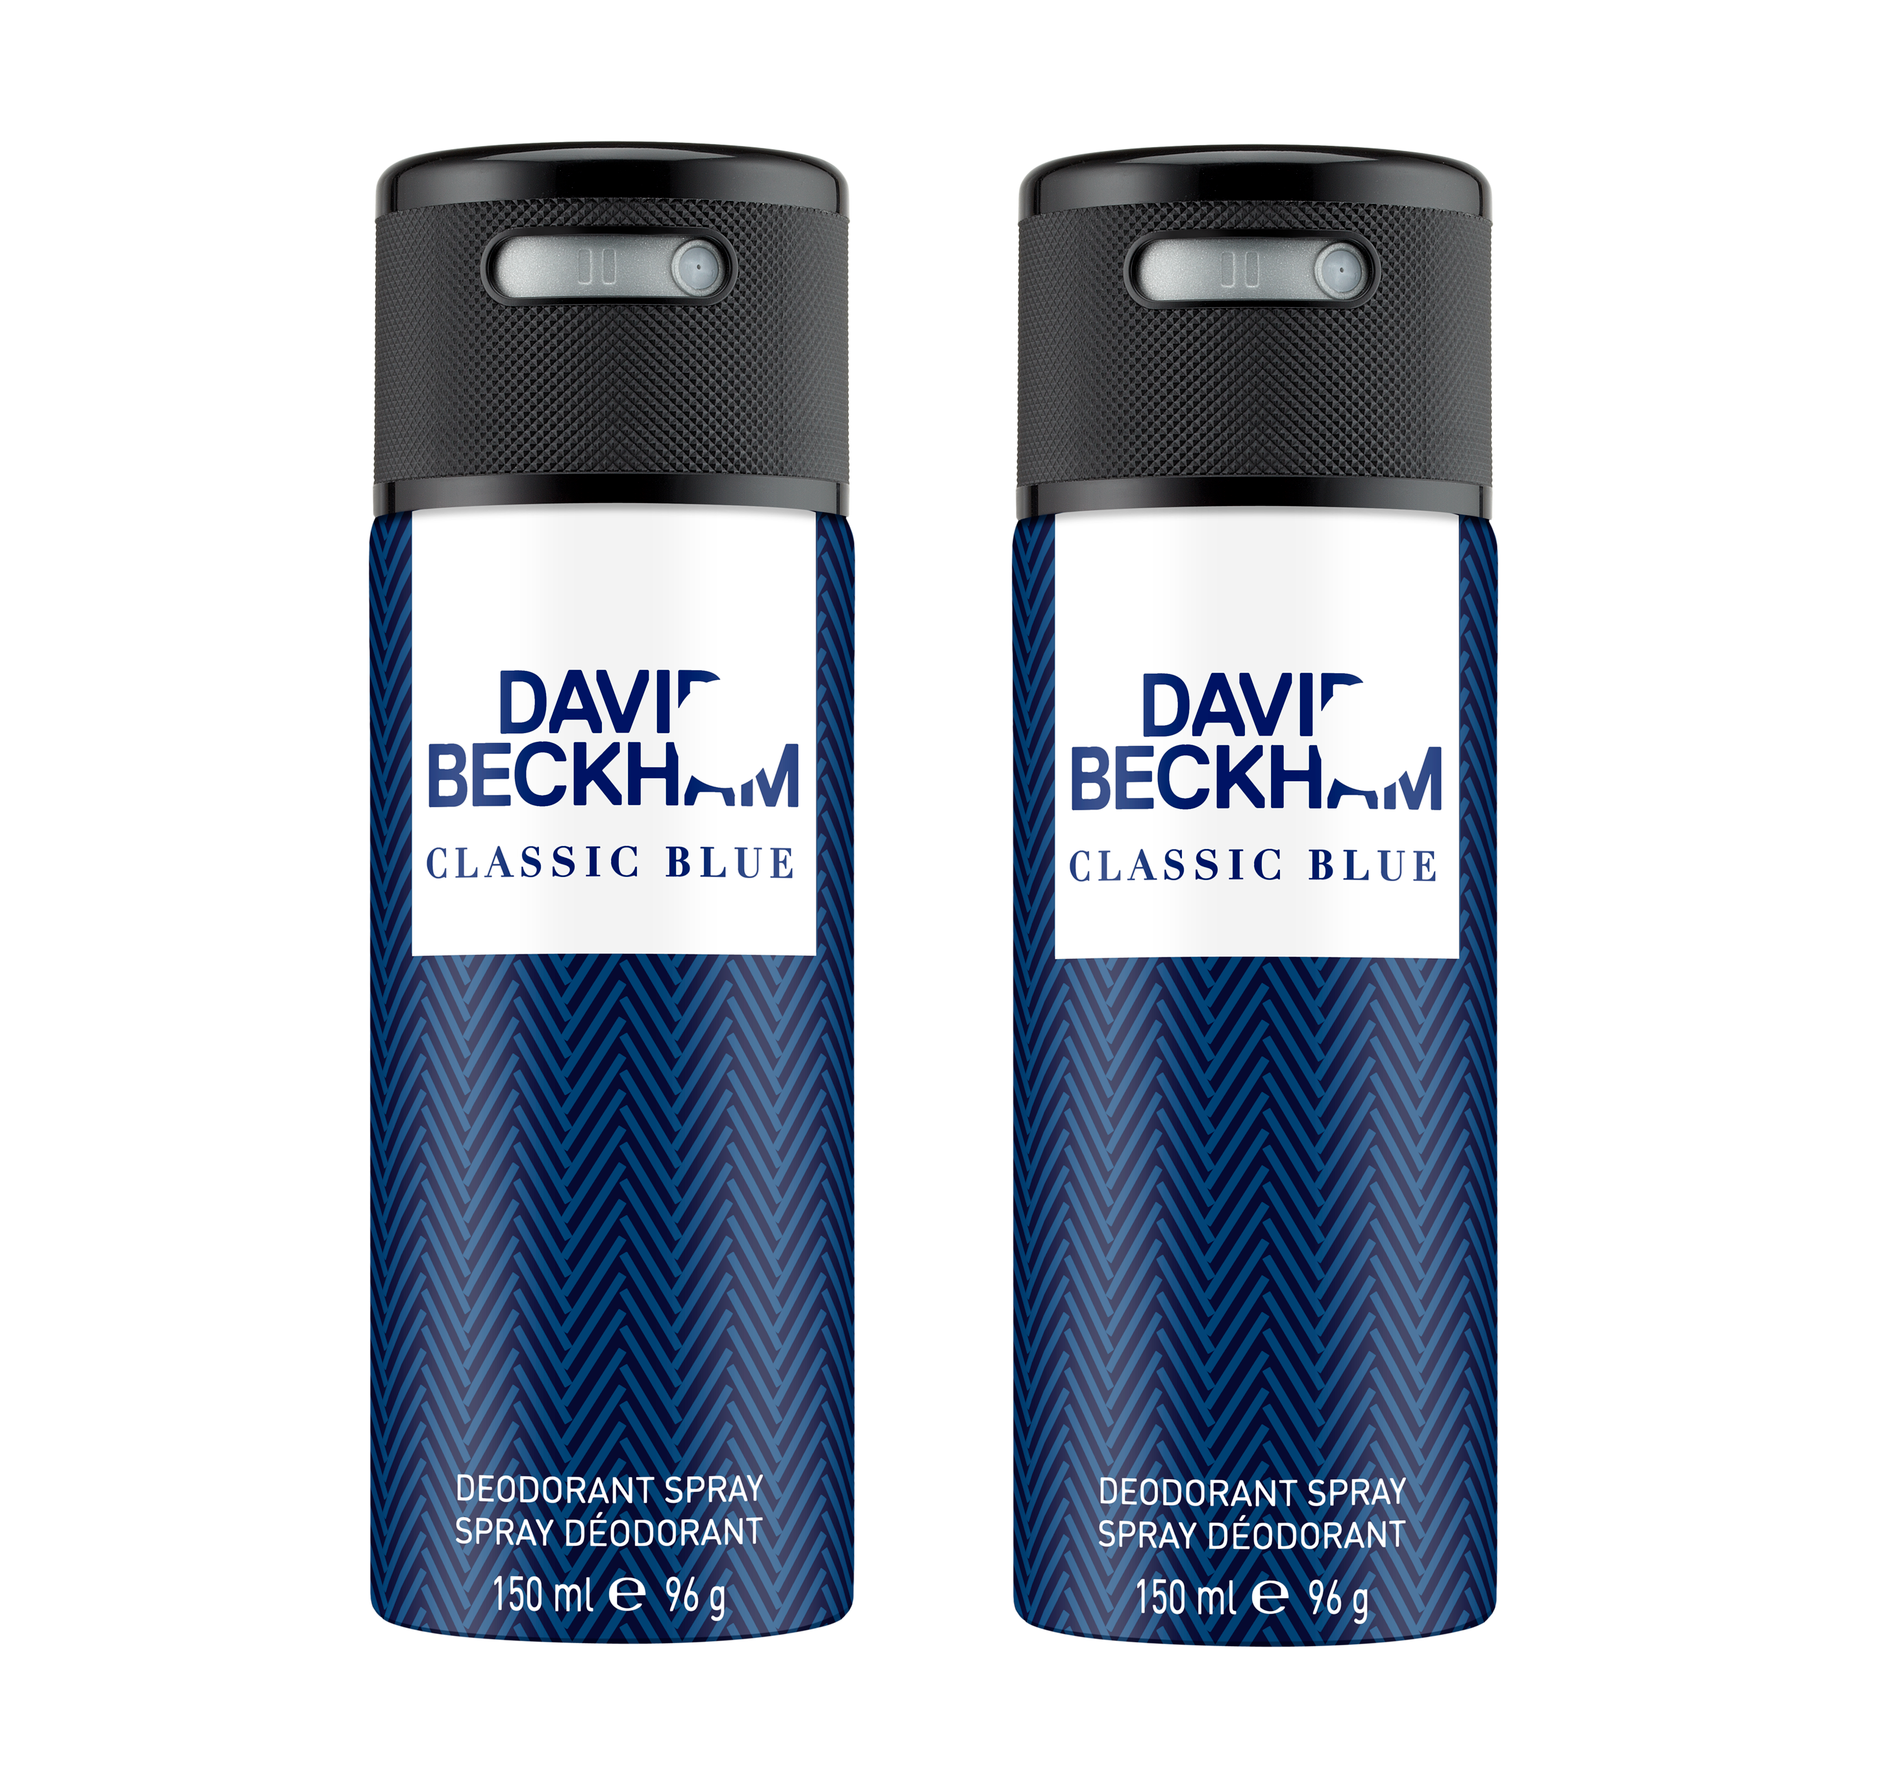 David Beckham - 2x Classic Blue Deodorant Spray 150 ml